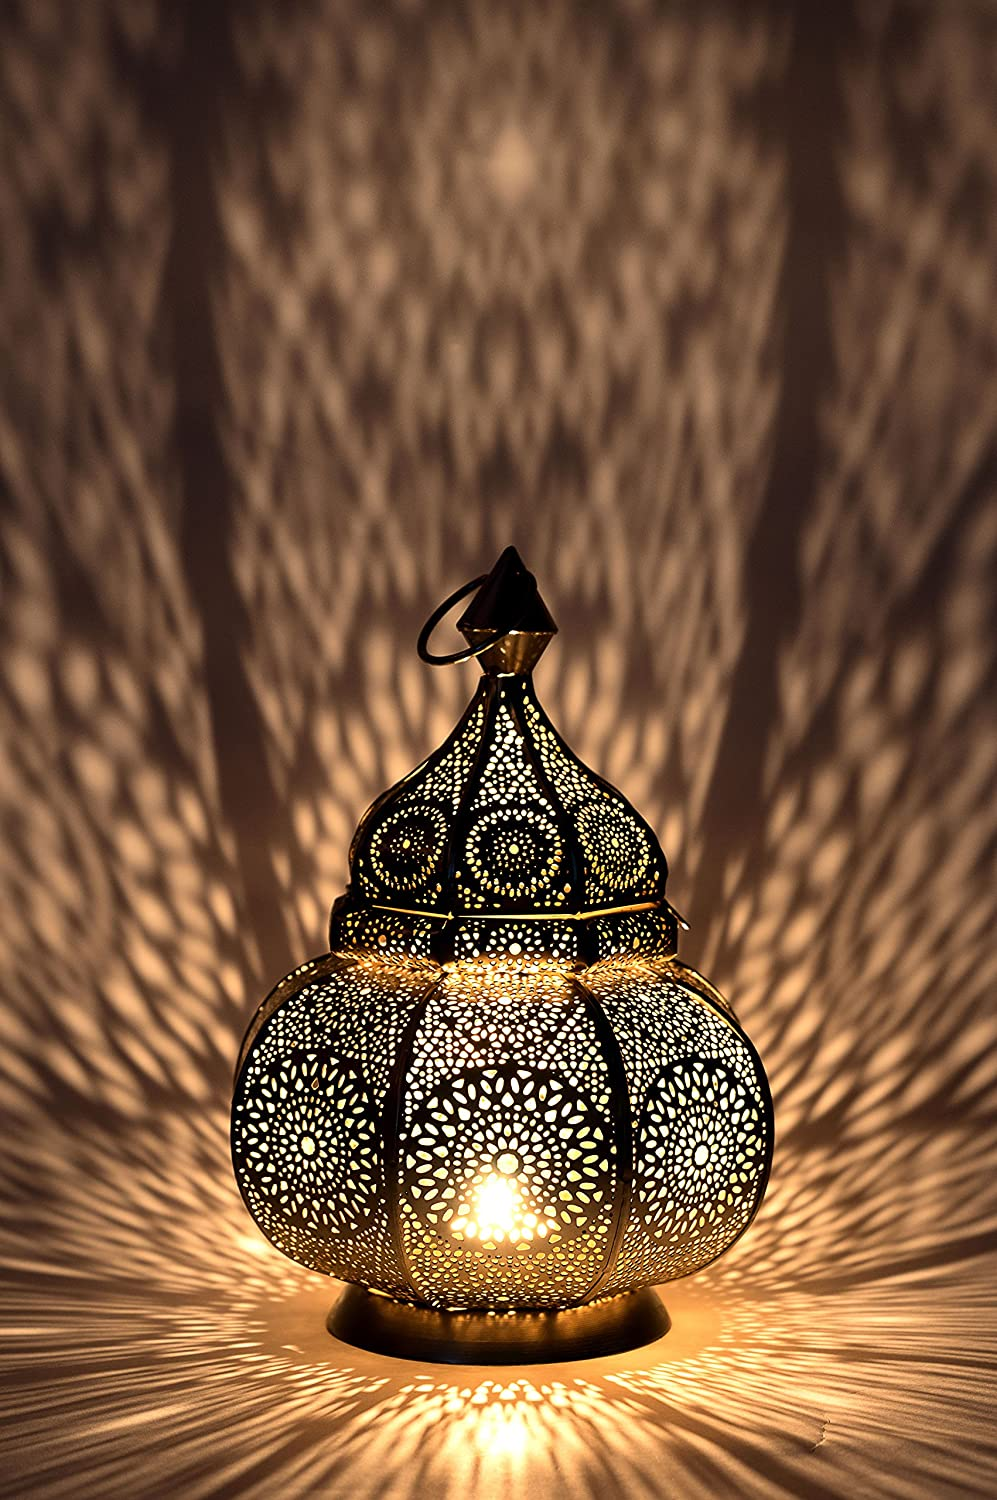 Moroccan Vintage Lantern Lights Lamp Ziva 30cm Gold Large | Oriental Garden Outdoor Hanging Lanterns for Candles as Decorations | Arabian Indoor Candle Tea Light Holders as Indian Party Home Decor